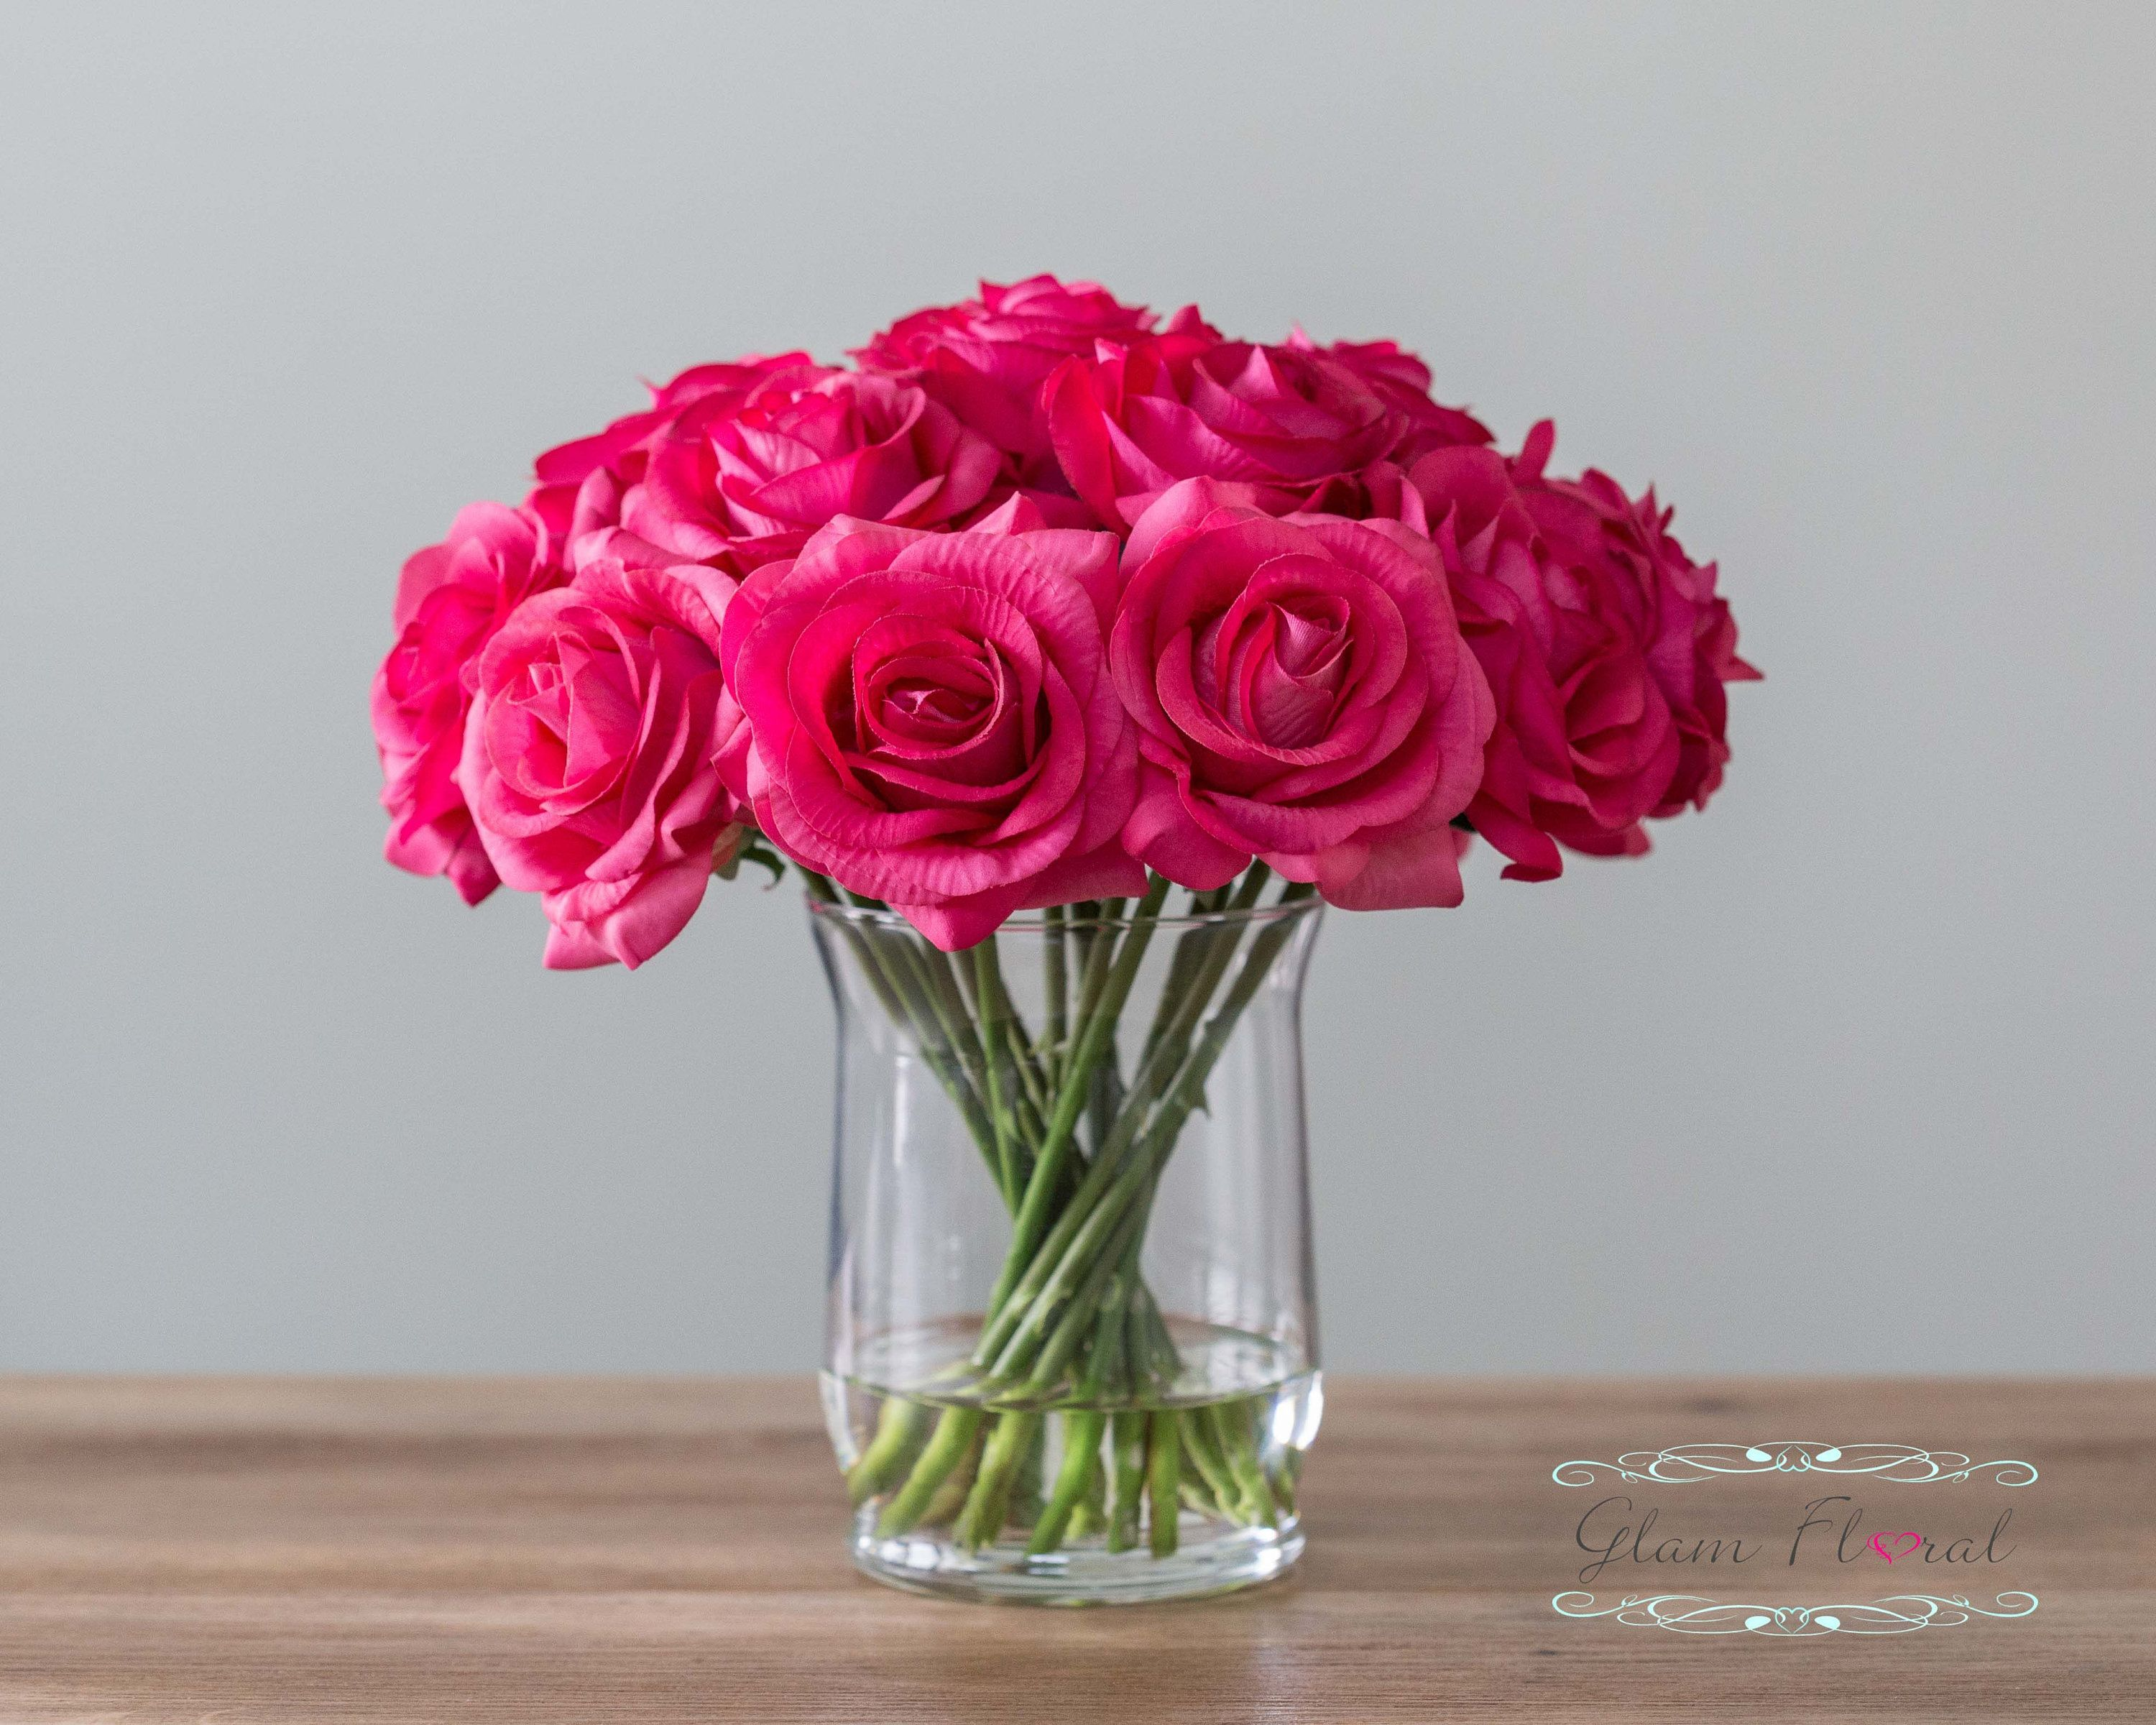 Real Touch Rose Flower Arrangement Fuchsia Dark Pink Roses In Faux Water Clear Glass Vas Rose Flower Arrangements Pink Flower Arrangements Flower Arrangements